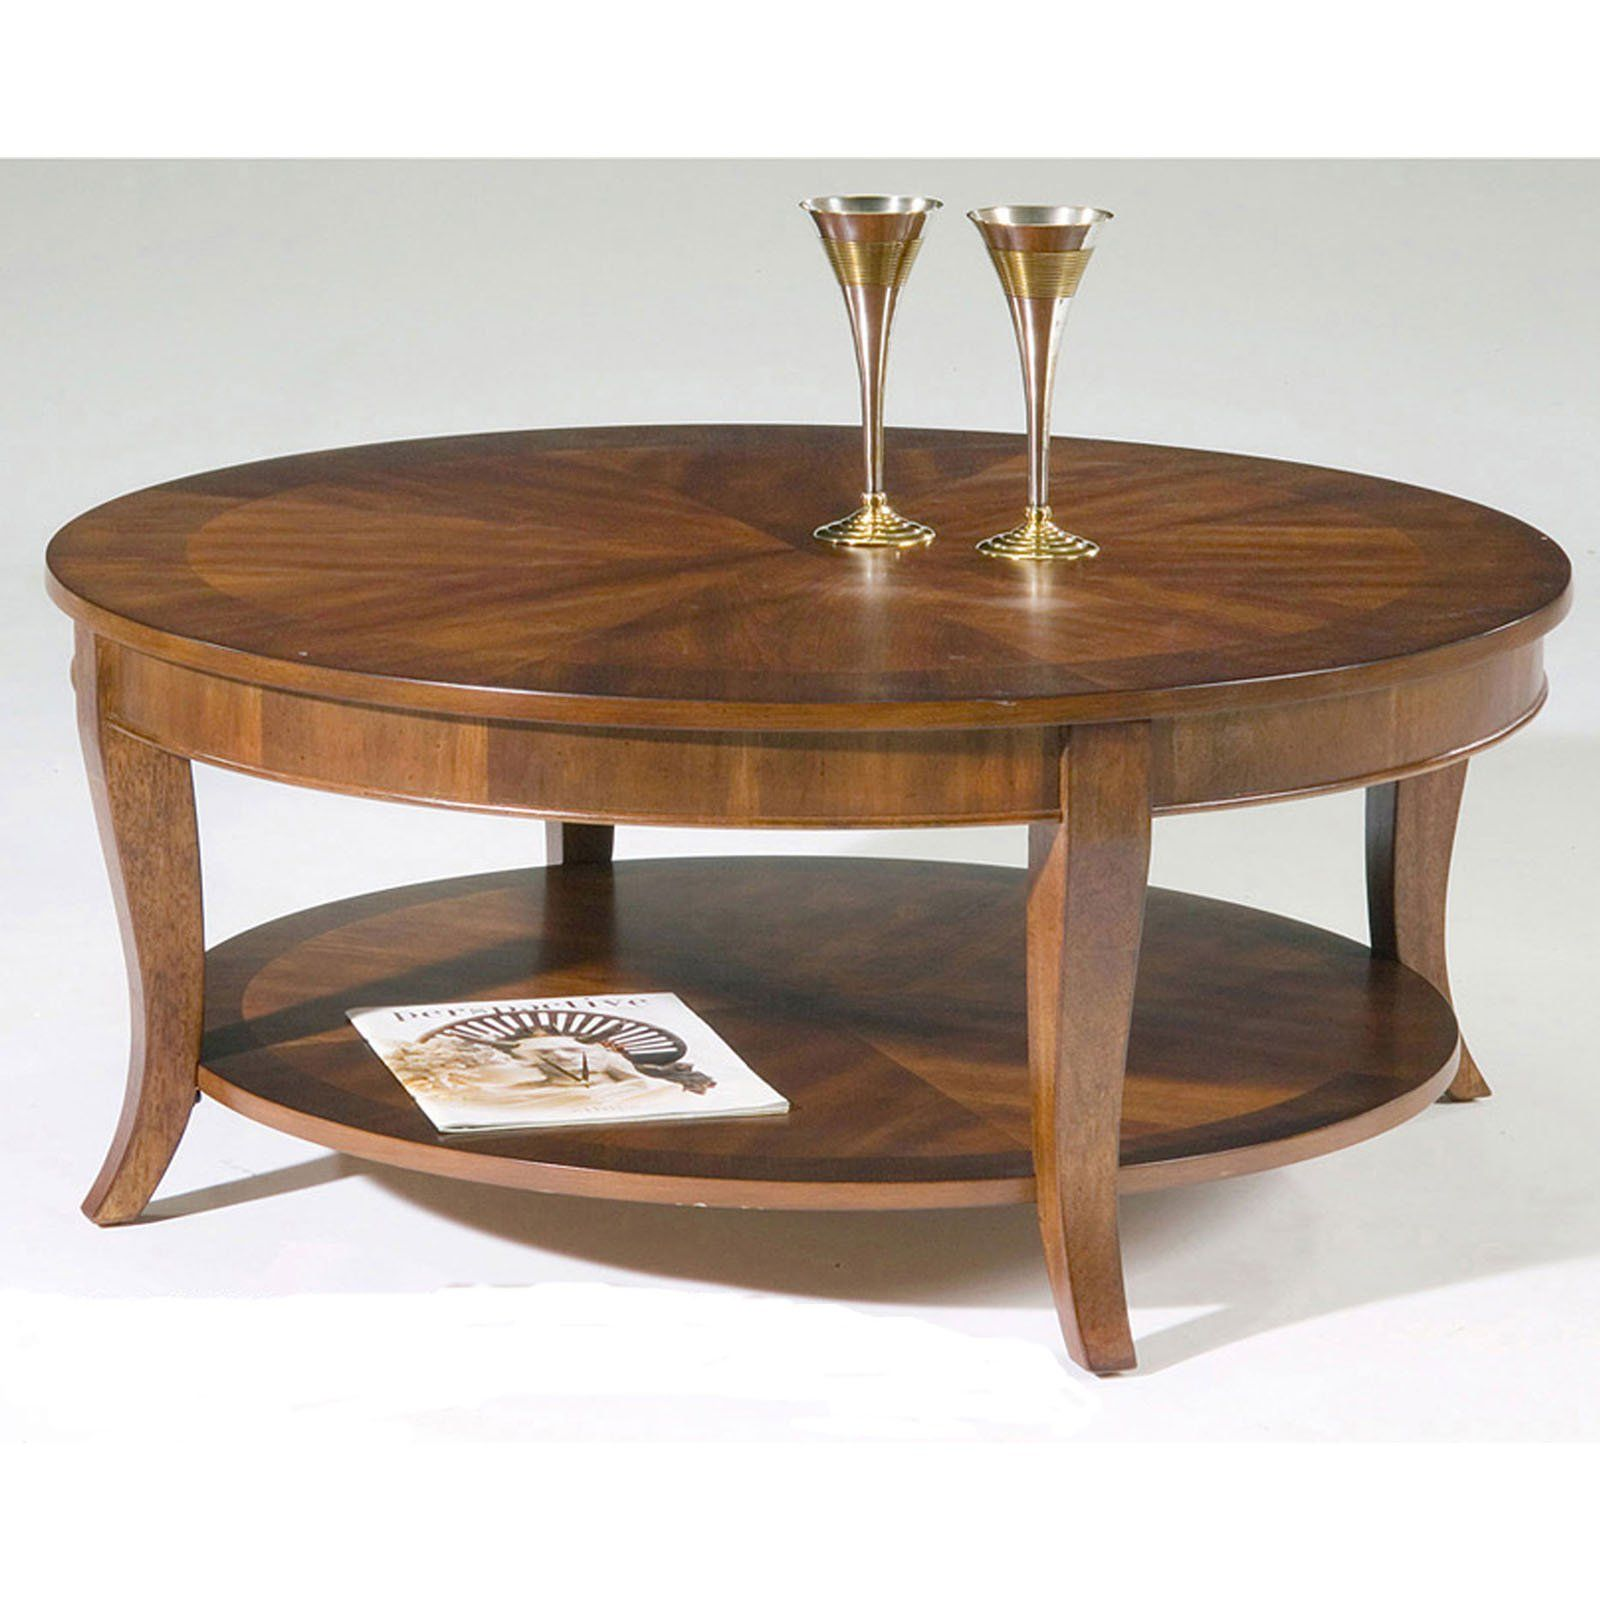 Bradshaw Round Coffee Table 748OT1010 in 2019